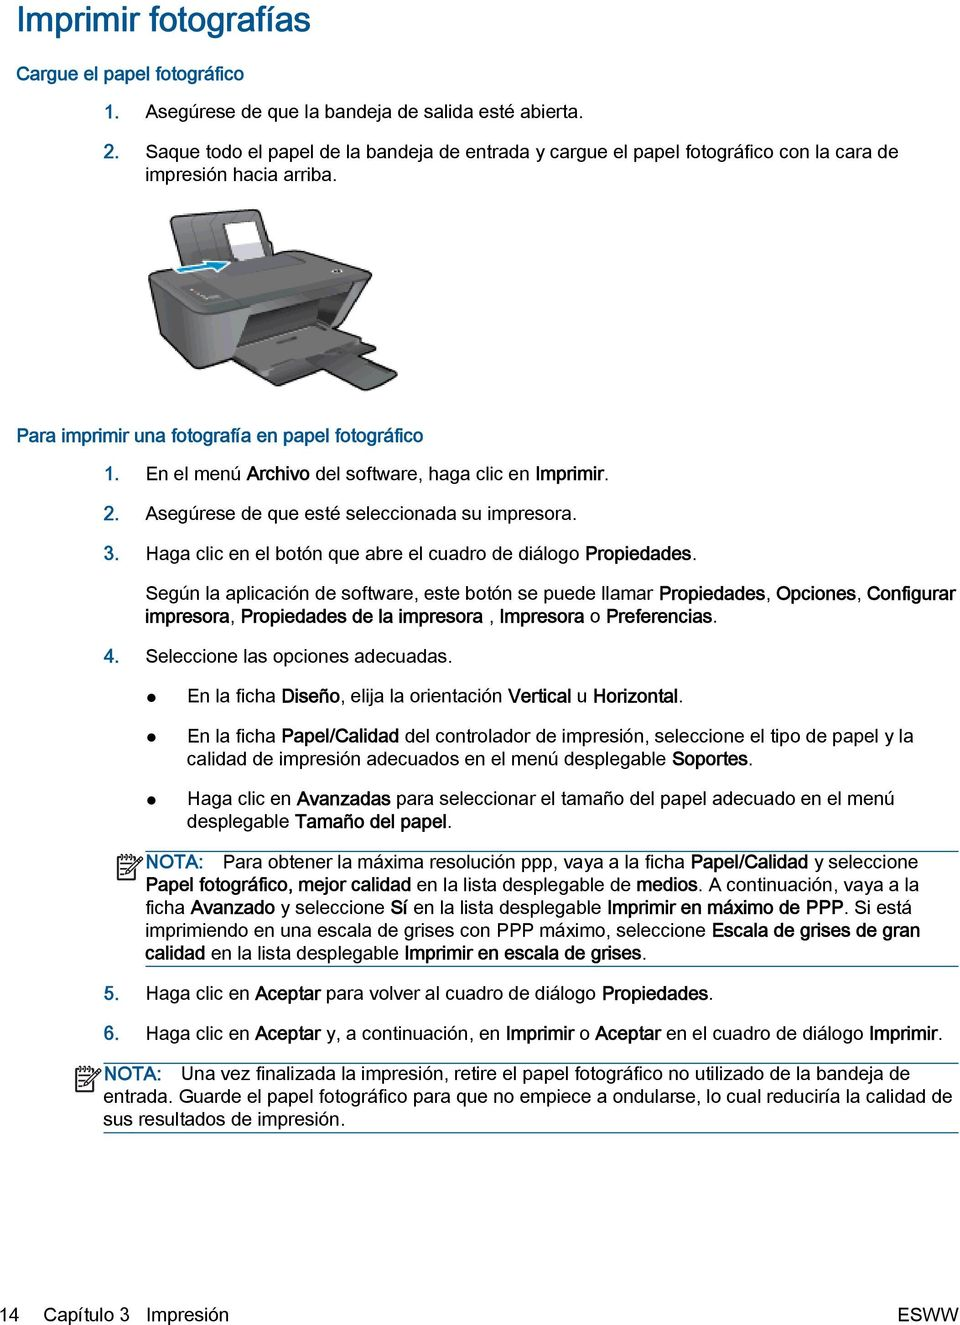 HP Deskjet 2540 All-in-One series - PDF